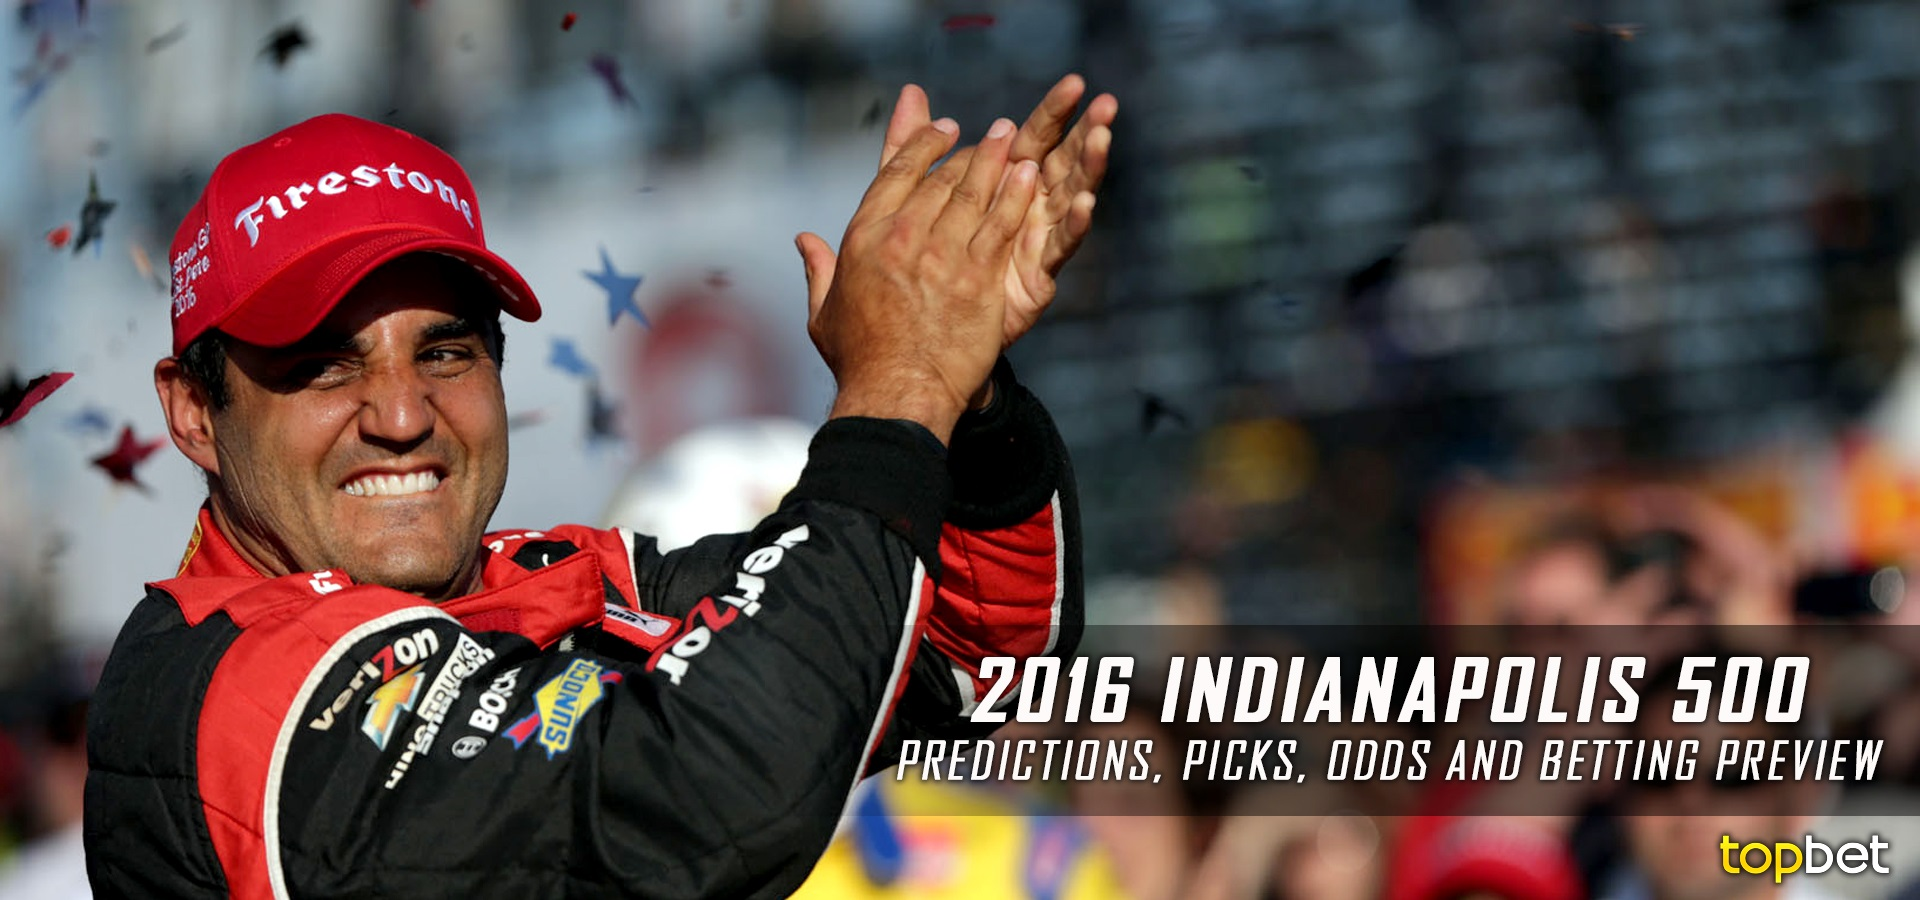 indy 500 odds 2016